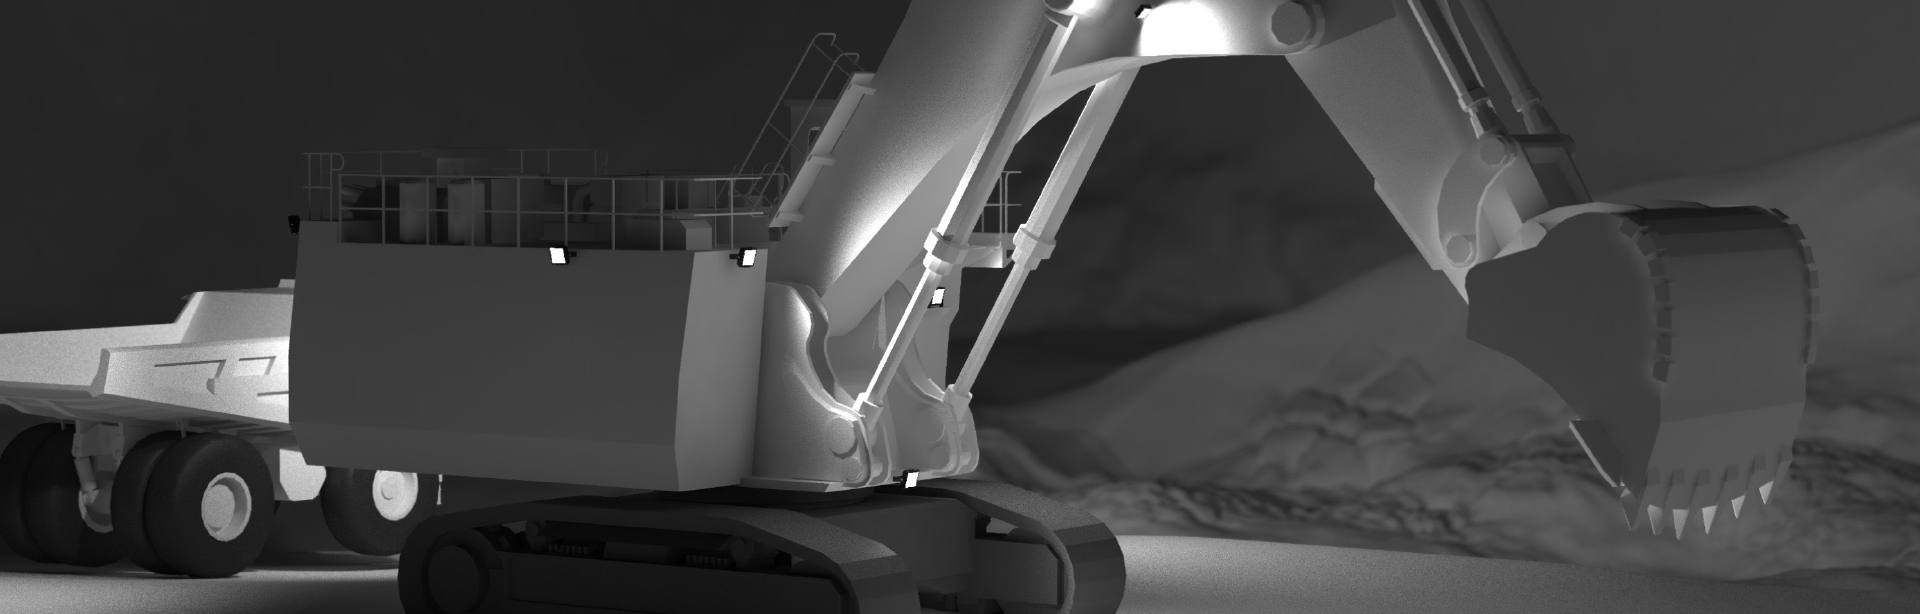 This Lighting Design Simulation Report shows how Coolon CP24 LED Floodlights improve the light output of a Caterpillar 6060 hydraulic mining shovel.